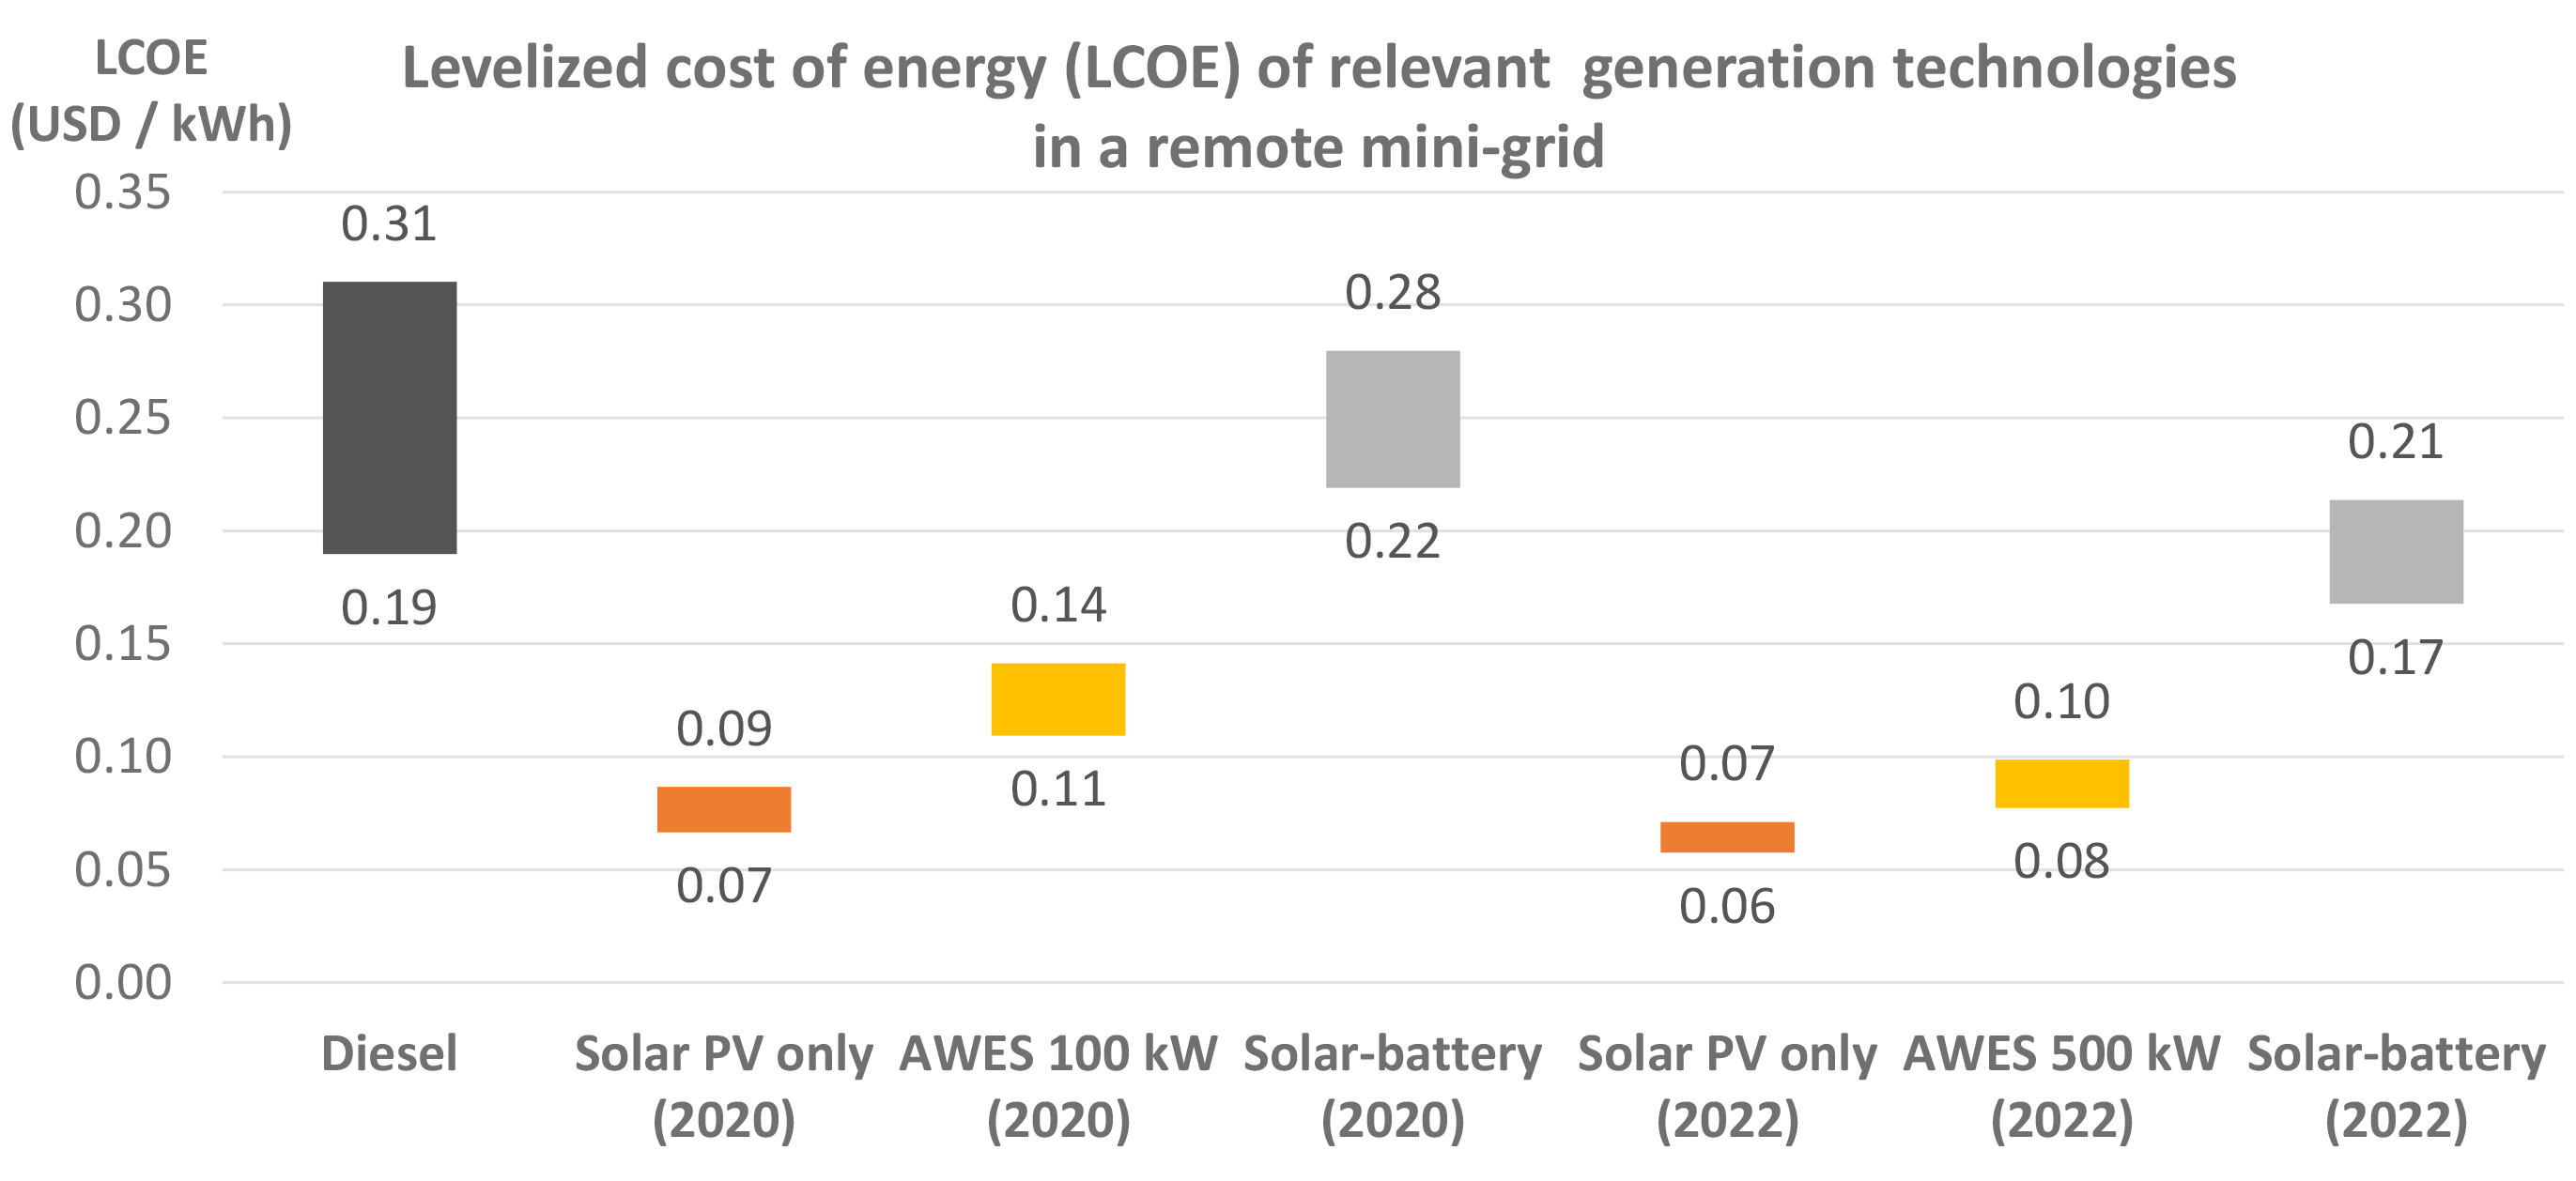 Levelized cost of energy (LCOE) of relevant generation technologies in a remote mini-grid